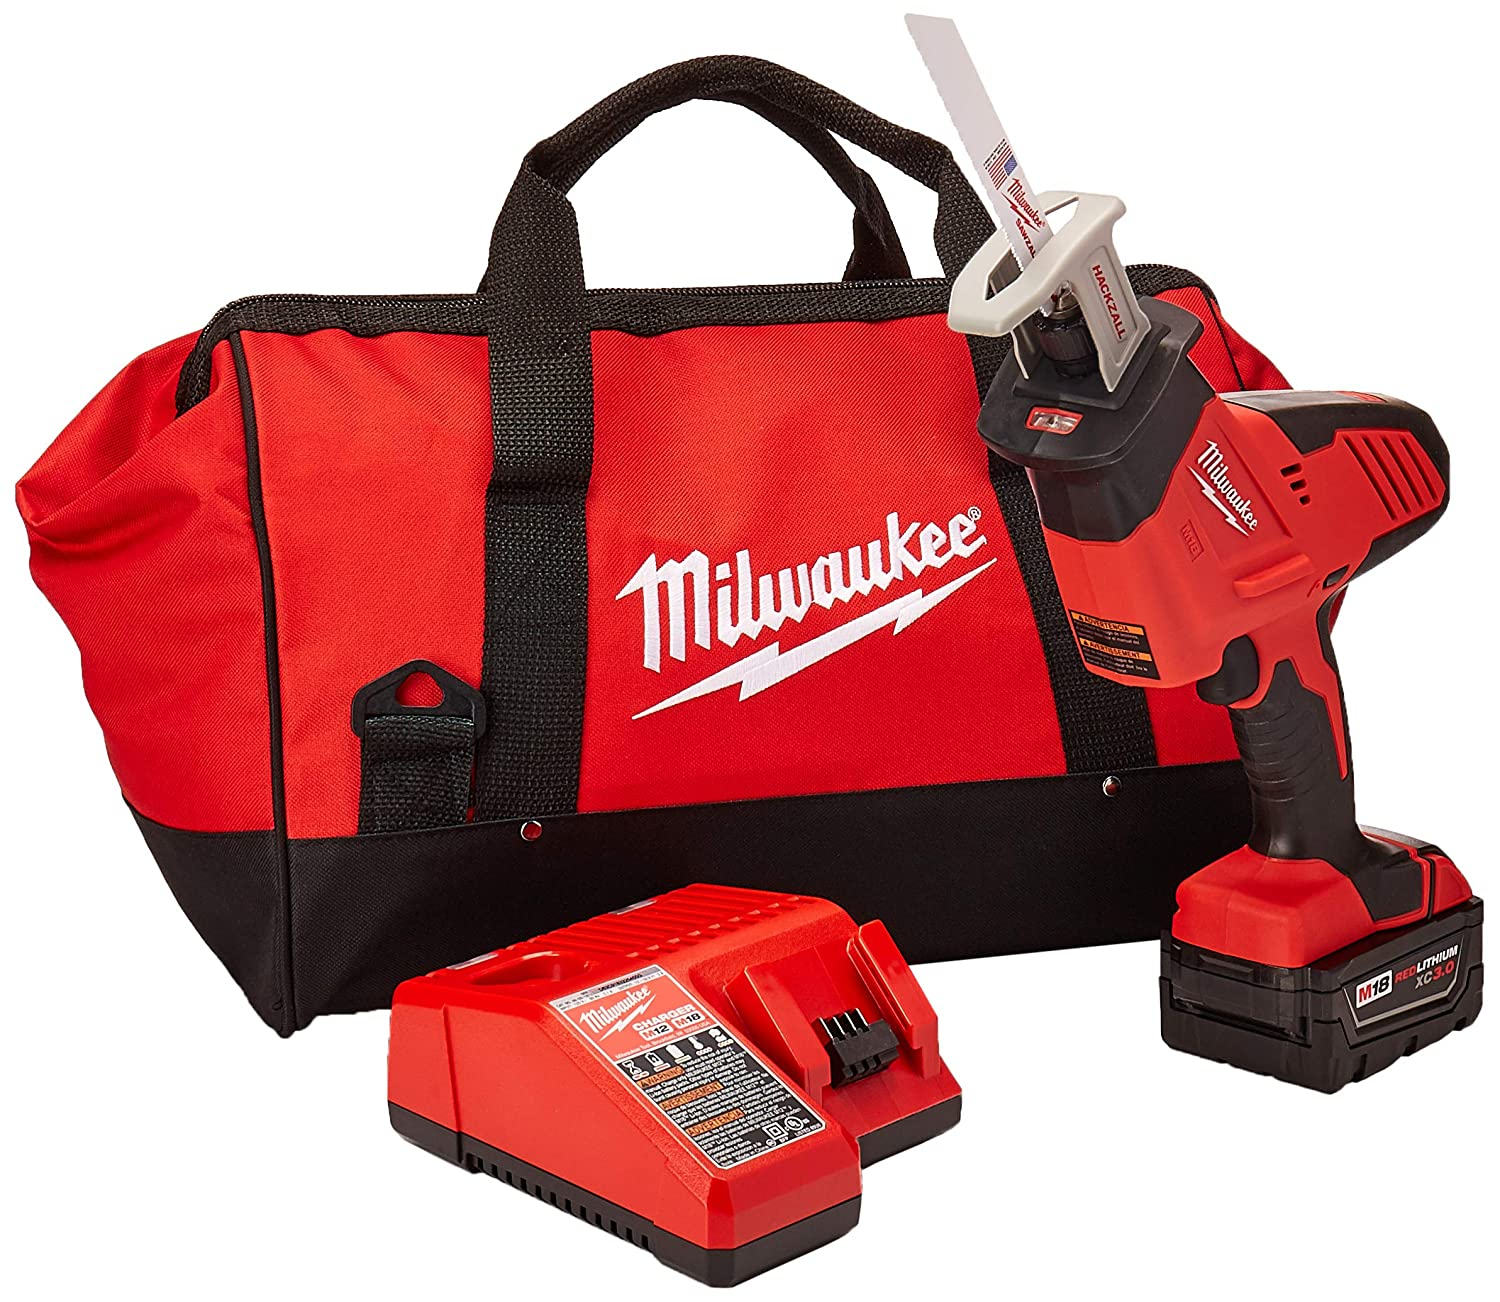 Milwaukee 2625-21 M18 18V Hackzall Cordless One-Handed Reciprocating Saw Kit